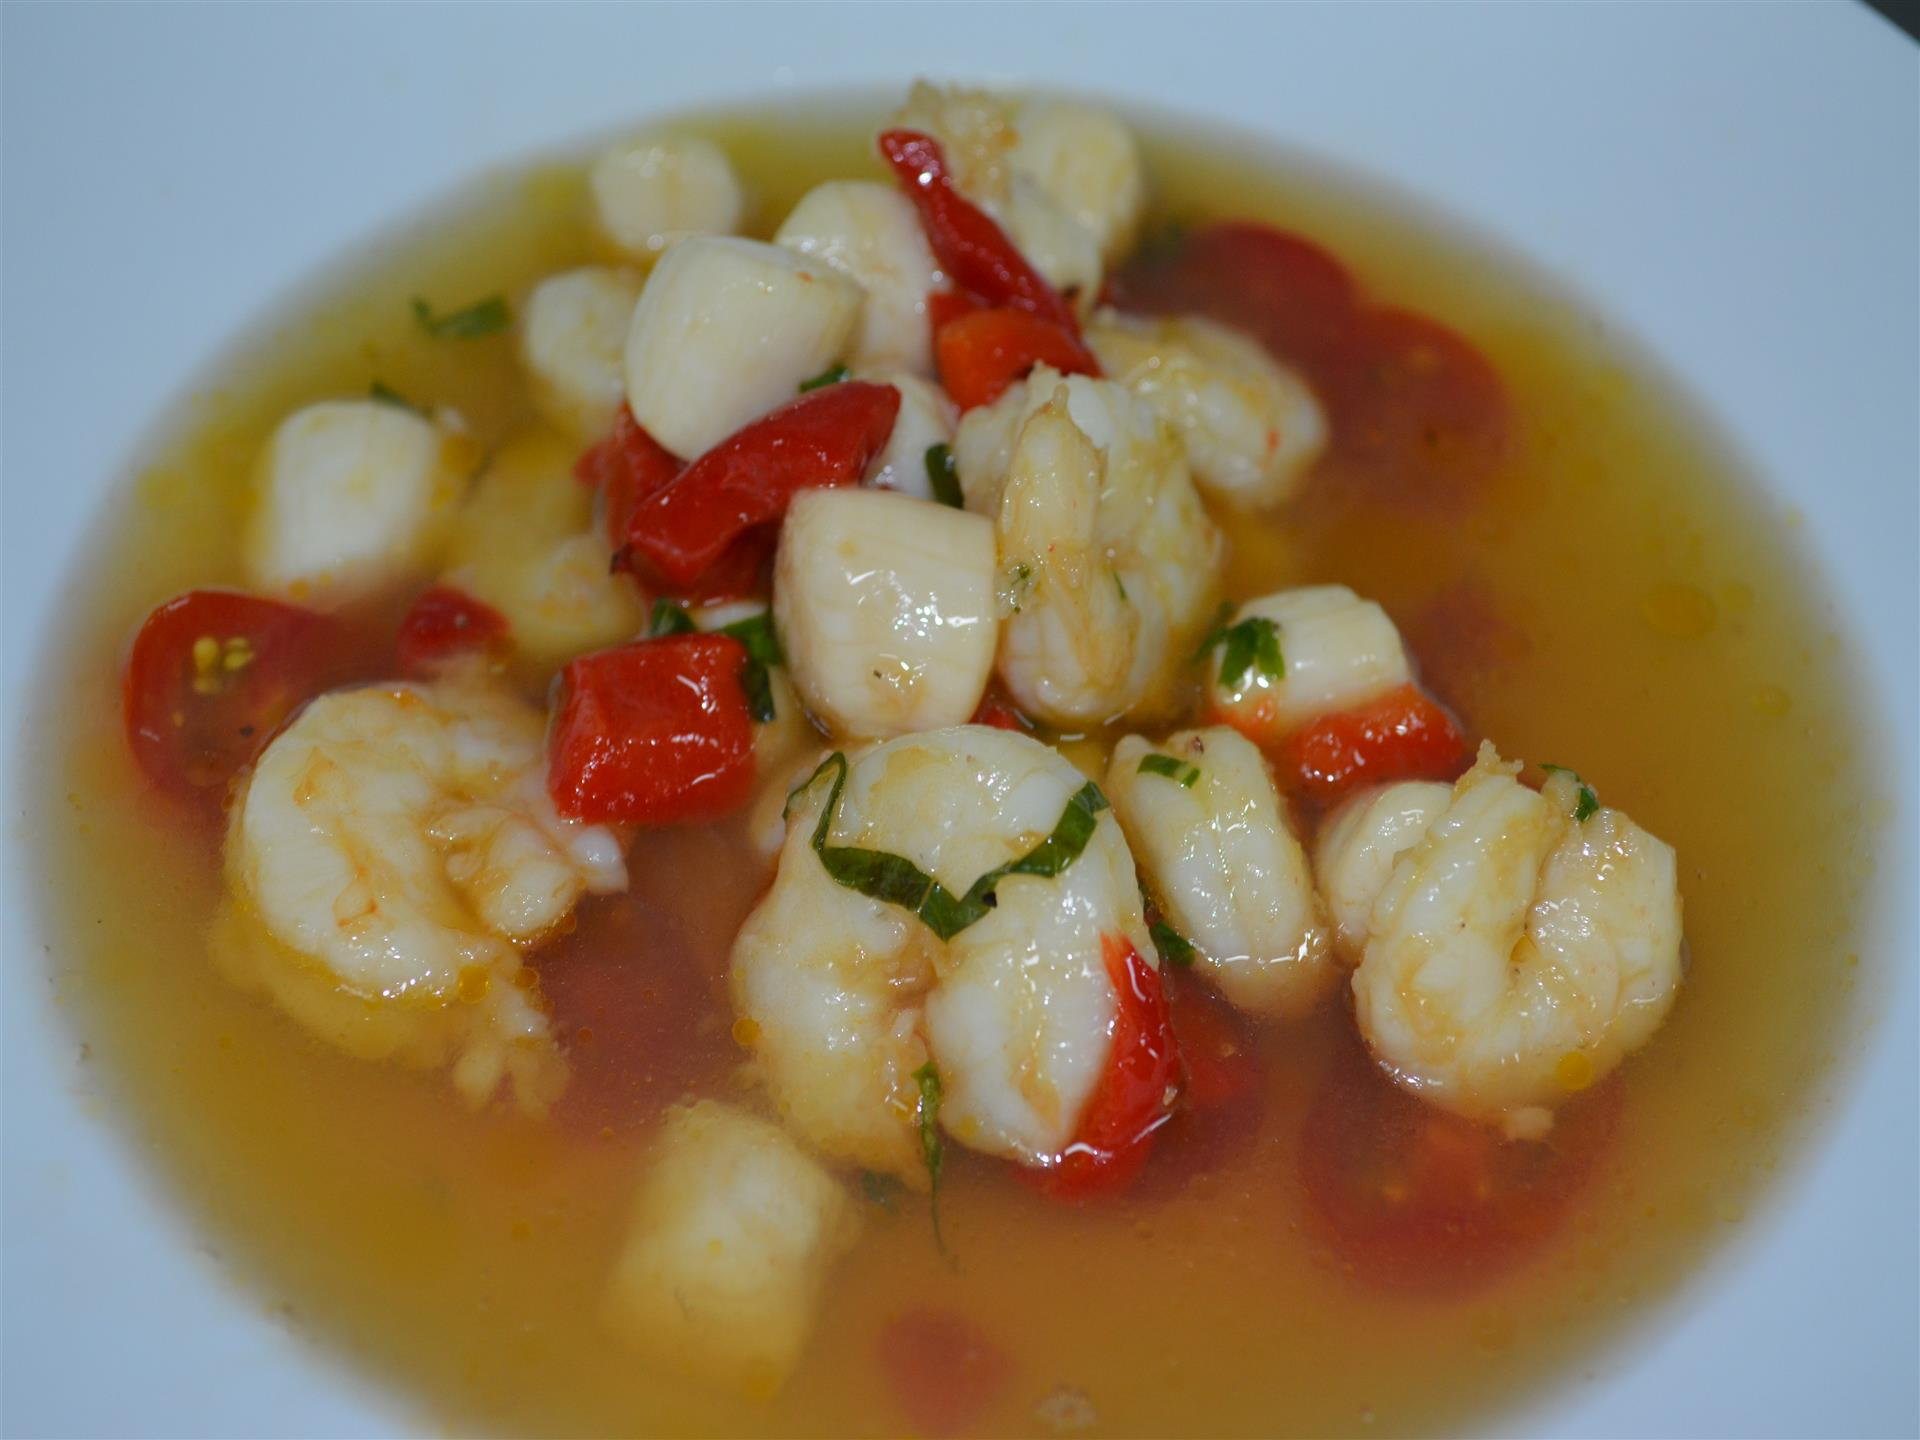 Soup with shrimp and red peppers